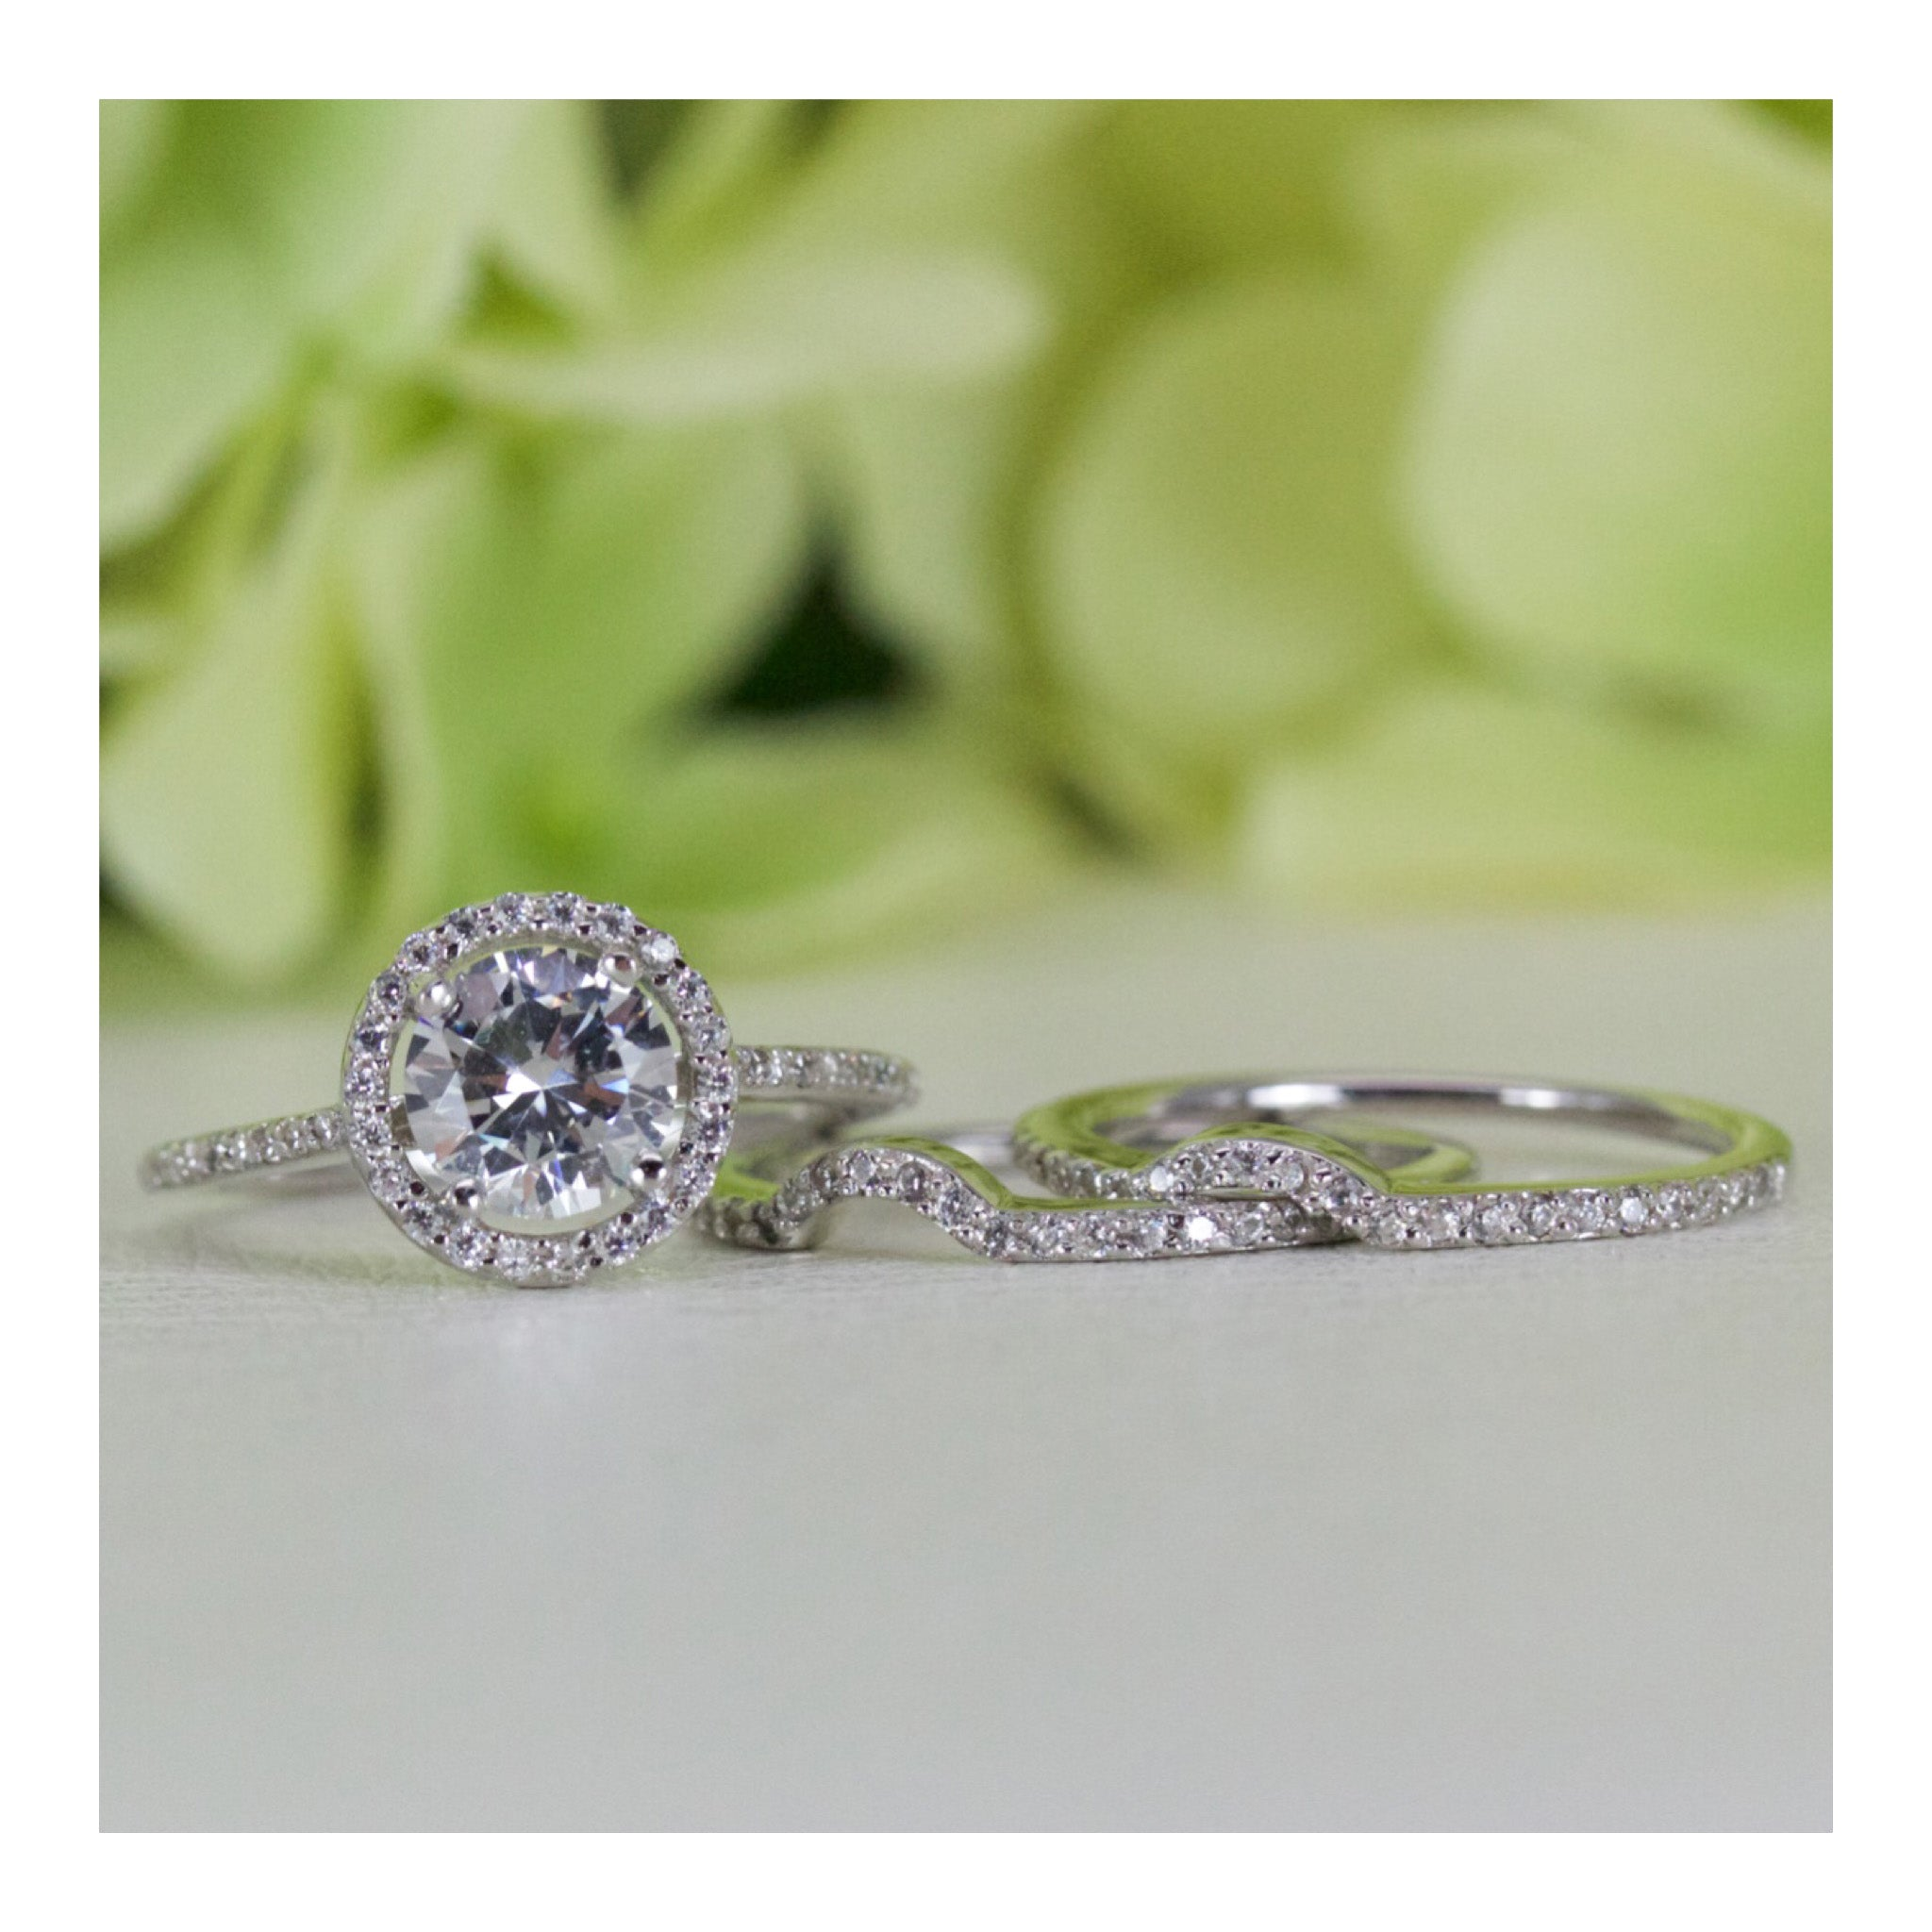 ring kirk kara double halo engagement ehrf diamond rchtig ehrfurchtig quotpirouettaquot finger rings pirouetta of on quot